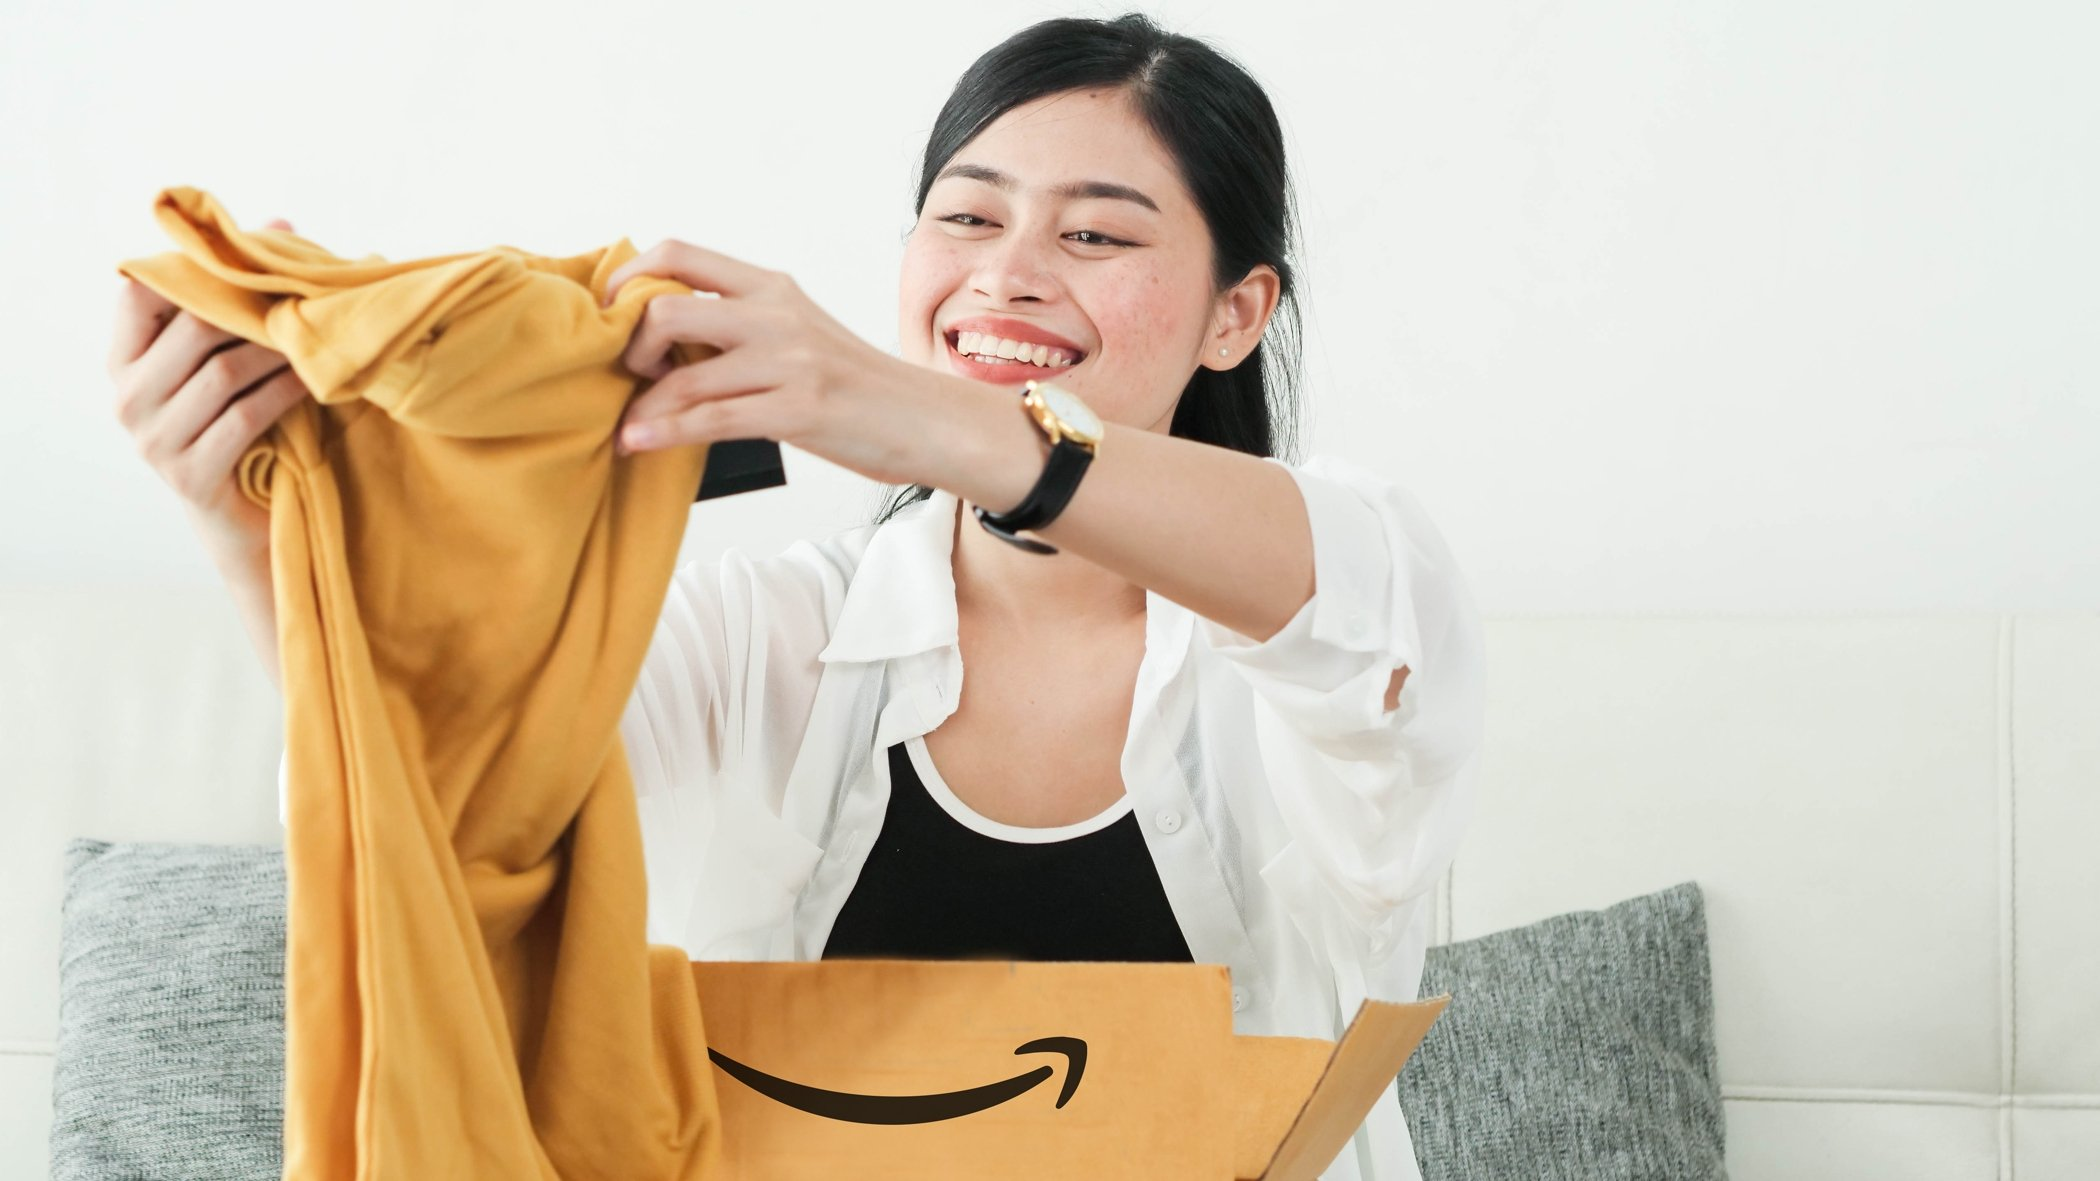 Woman opening Amazon package in her home